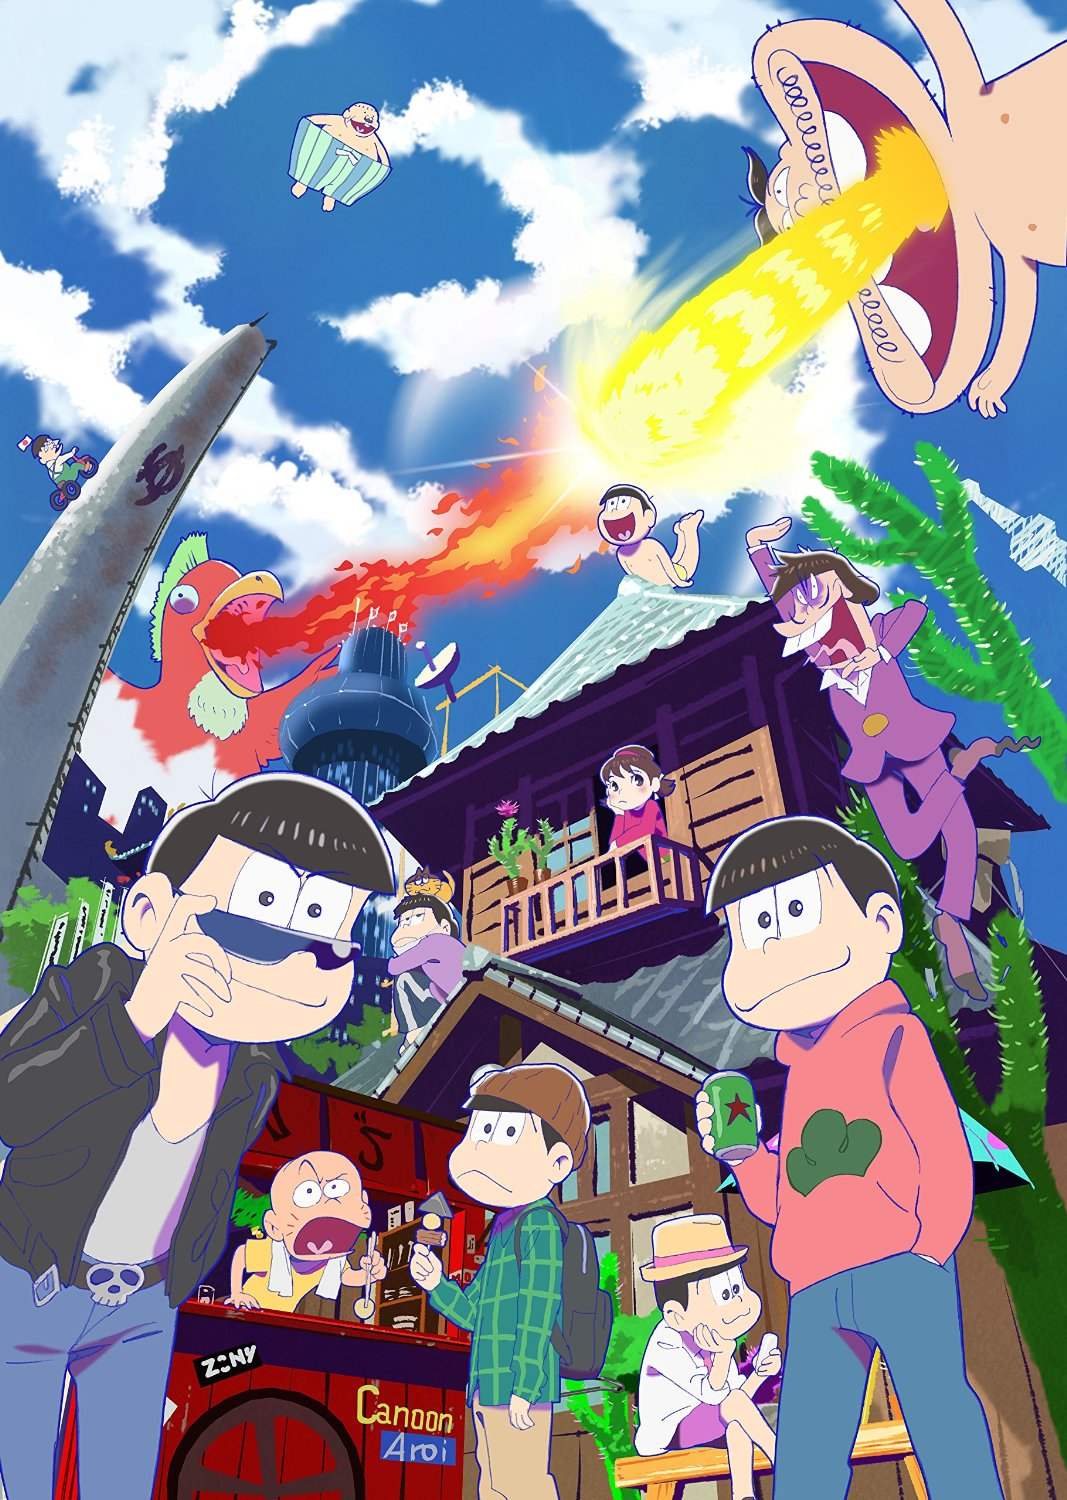 Osomatsu-san anime visual